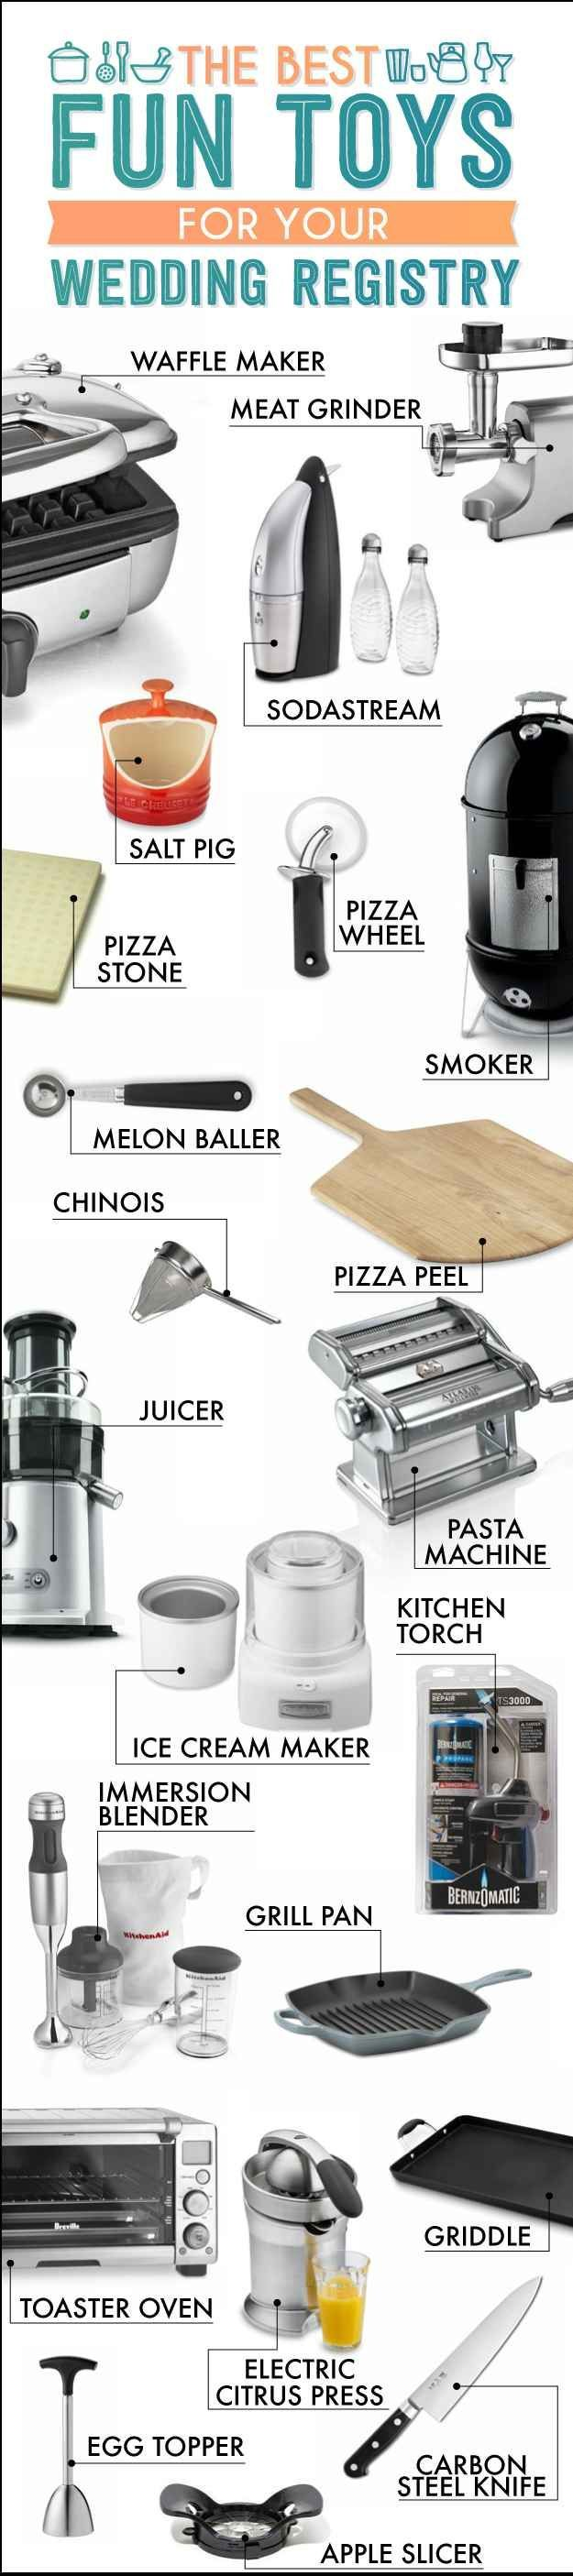 The Essential Wedding Registry Checklist For Your Kitchen. Wedding Registry Essentials || Aisle Perfect